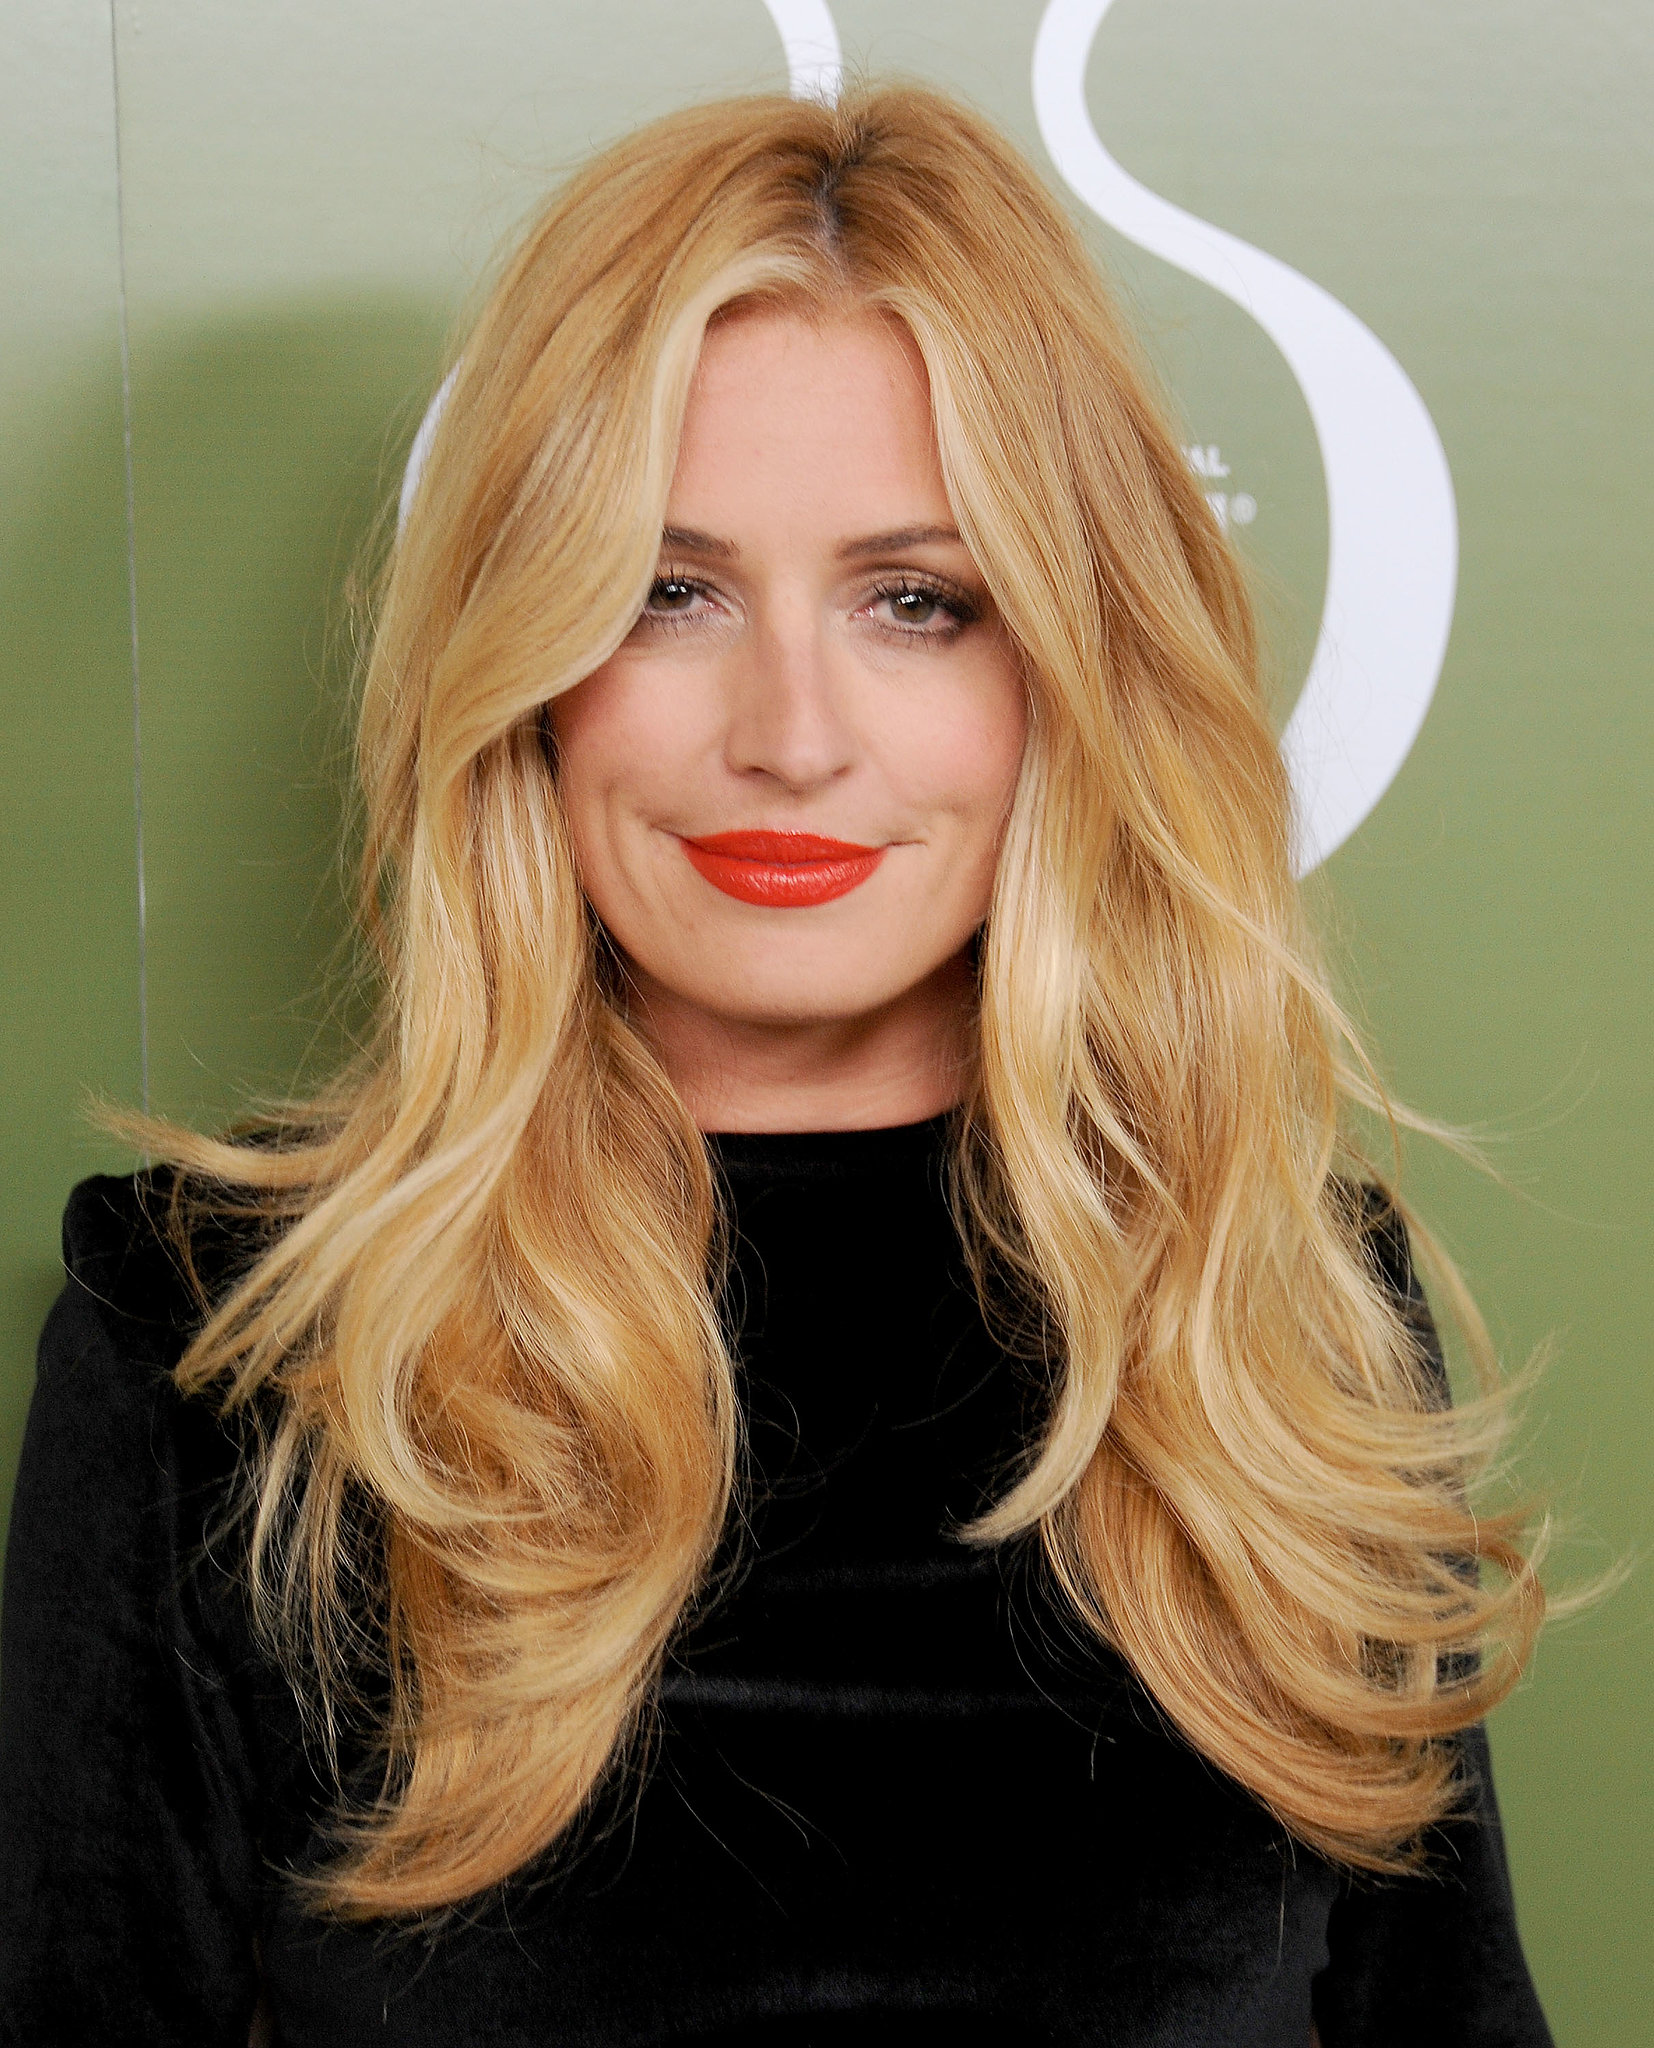 Cat Deeley was party-hopping all weekend, and for the Variety pre-Emmy party she wore a bright tangerine lipstick to s